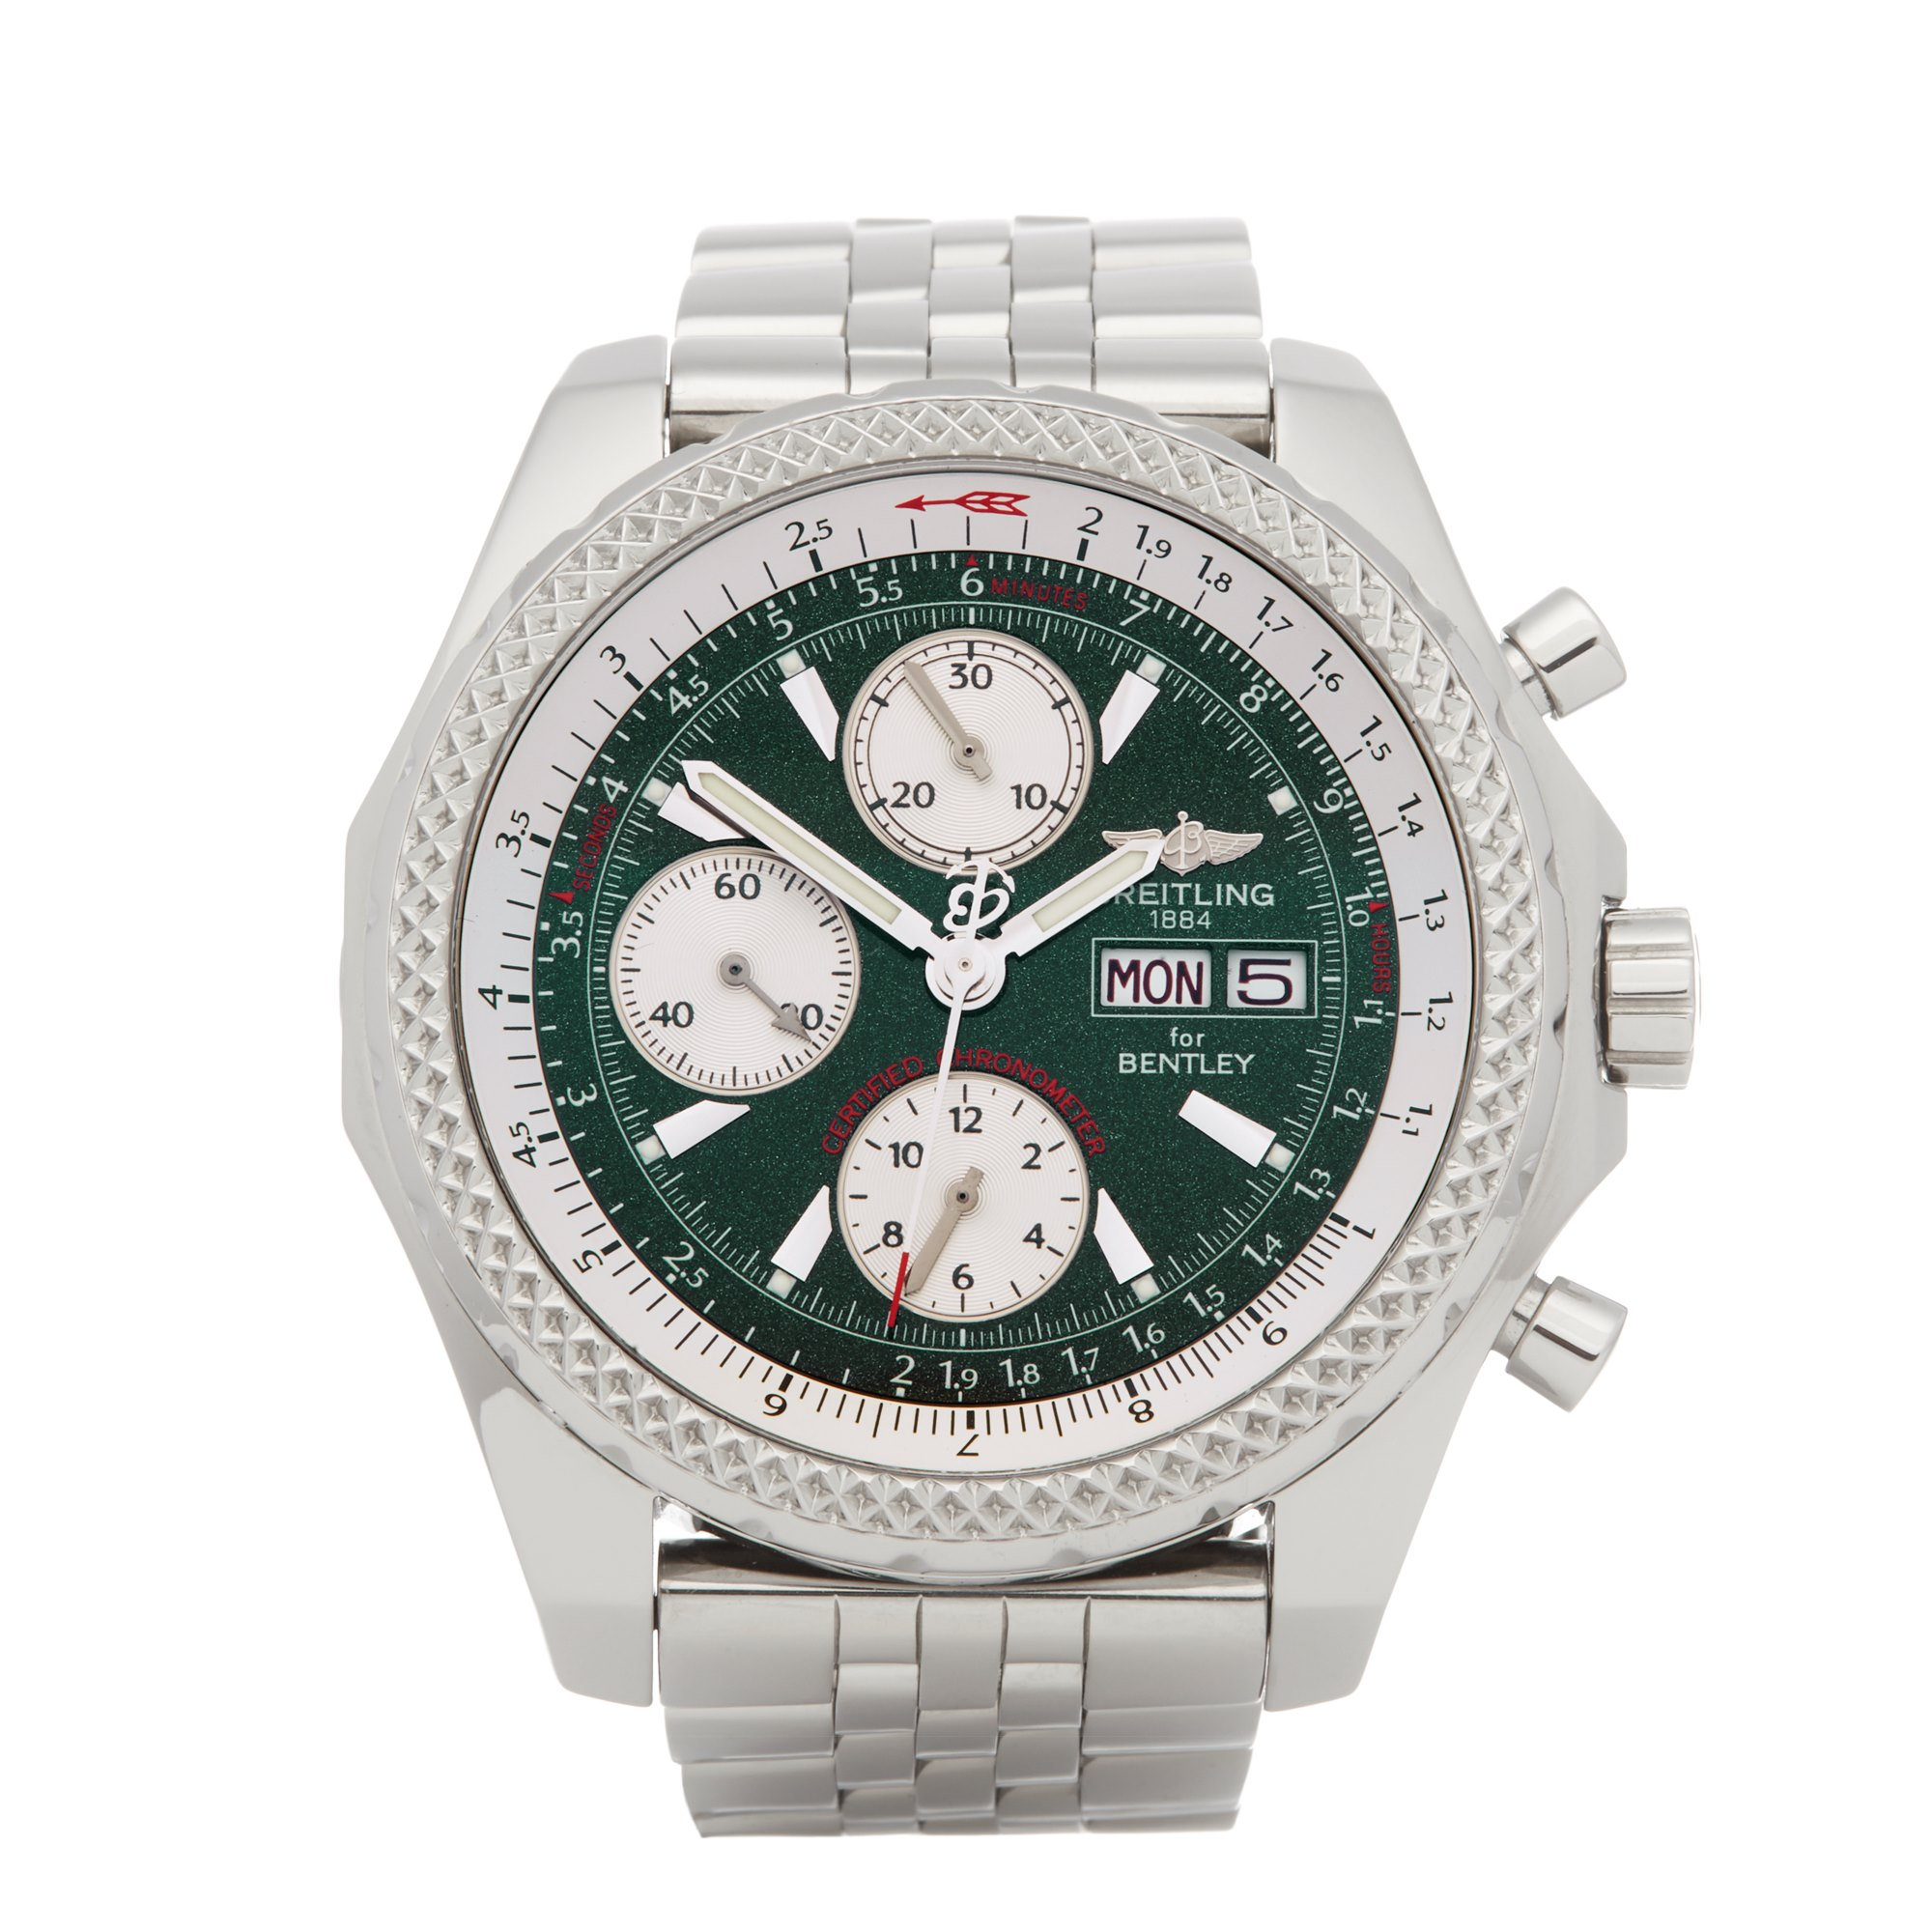 Breitling Bentley Chronograph Stainless Steel A13362